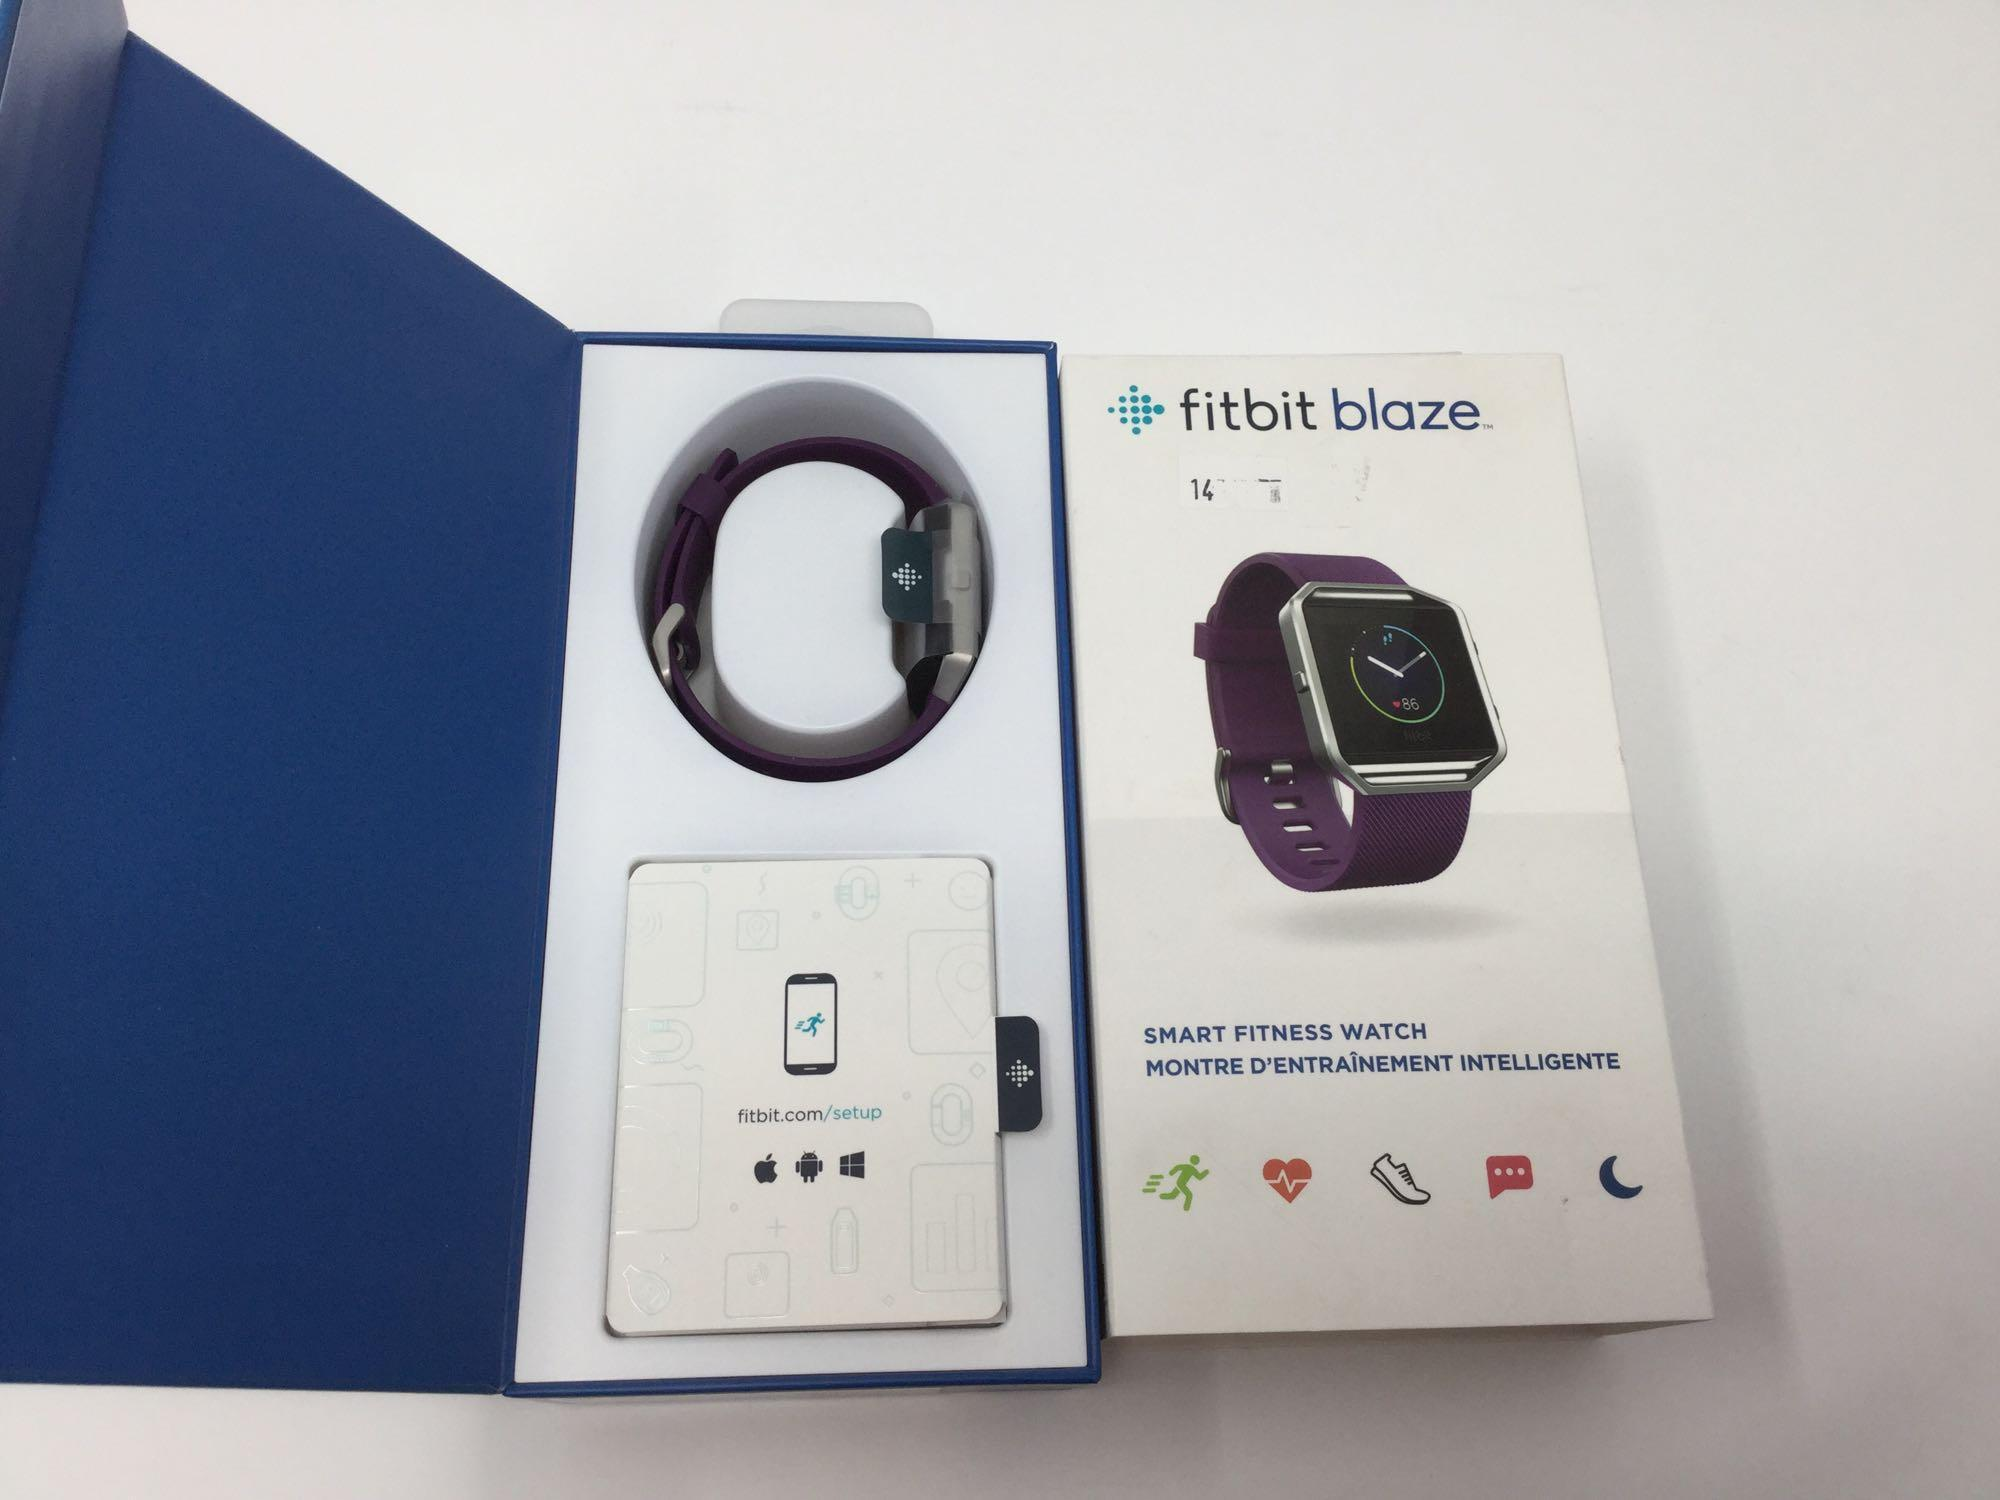 Lot 10 - FitBit Blaze Smart Fitness Watch